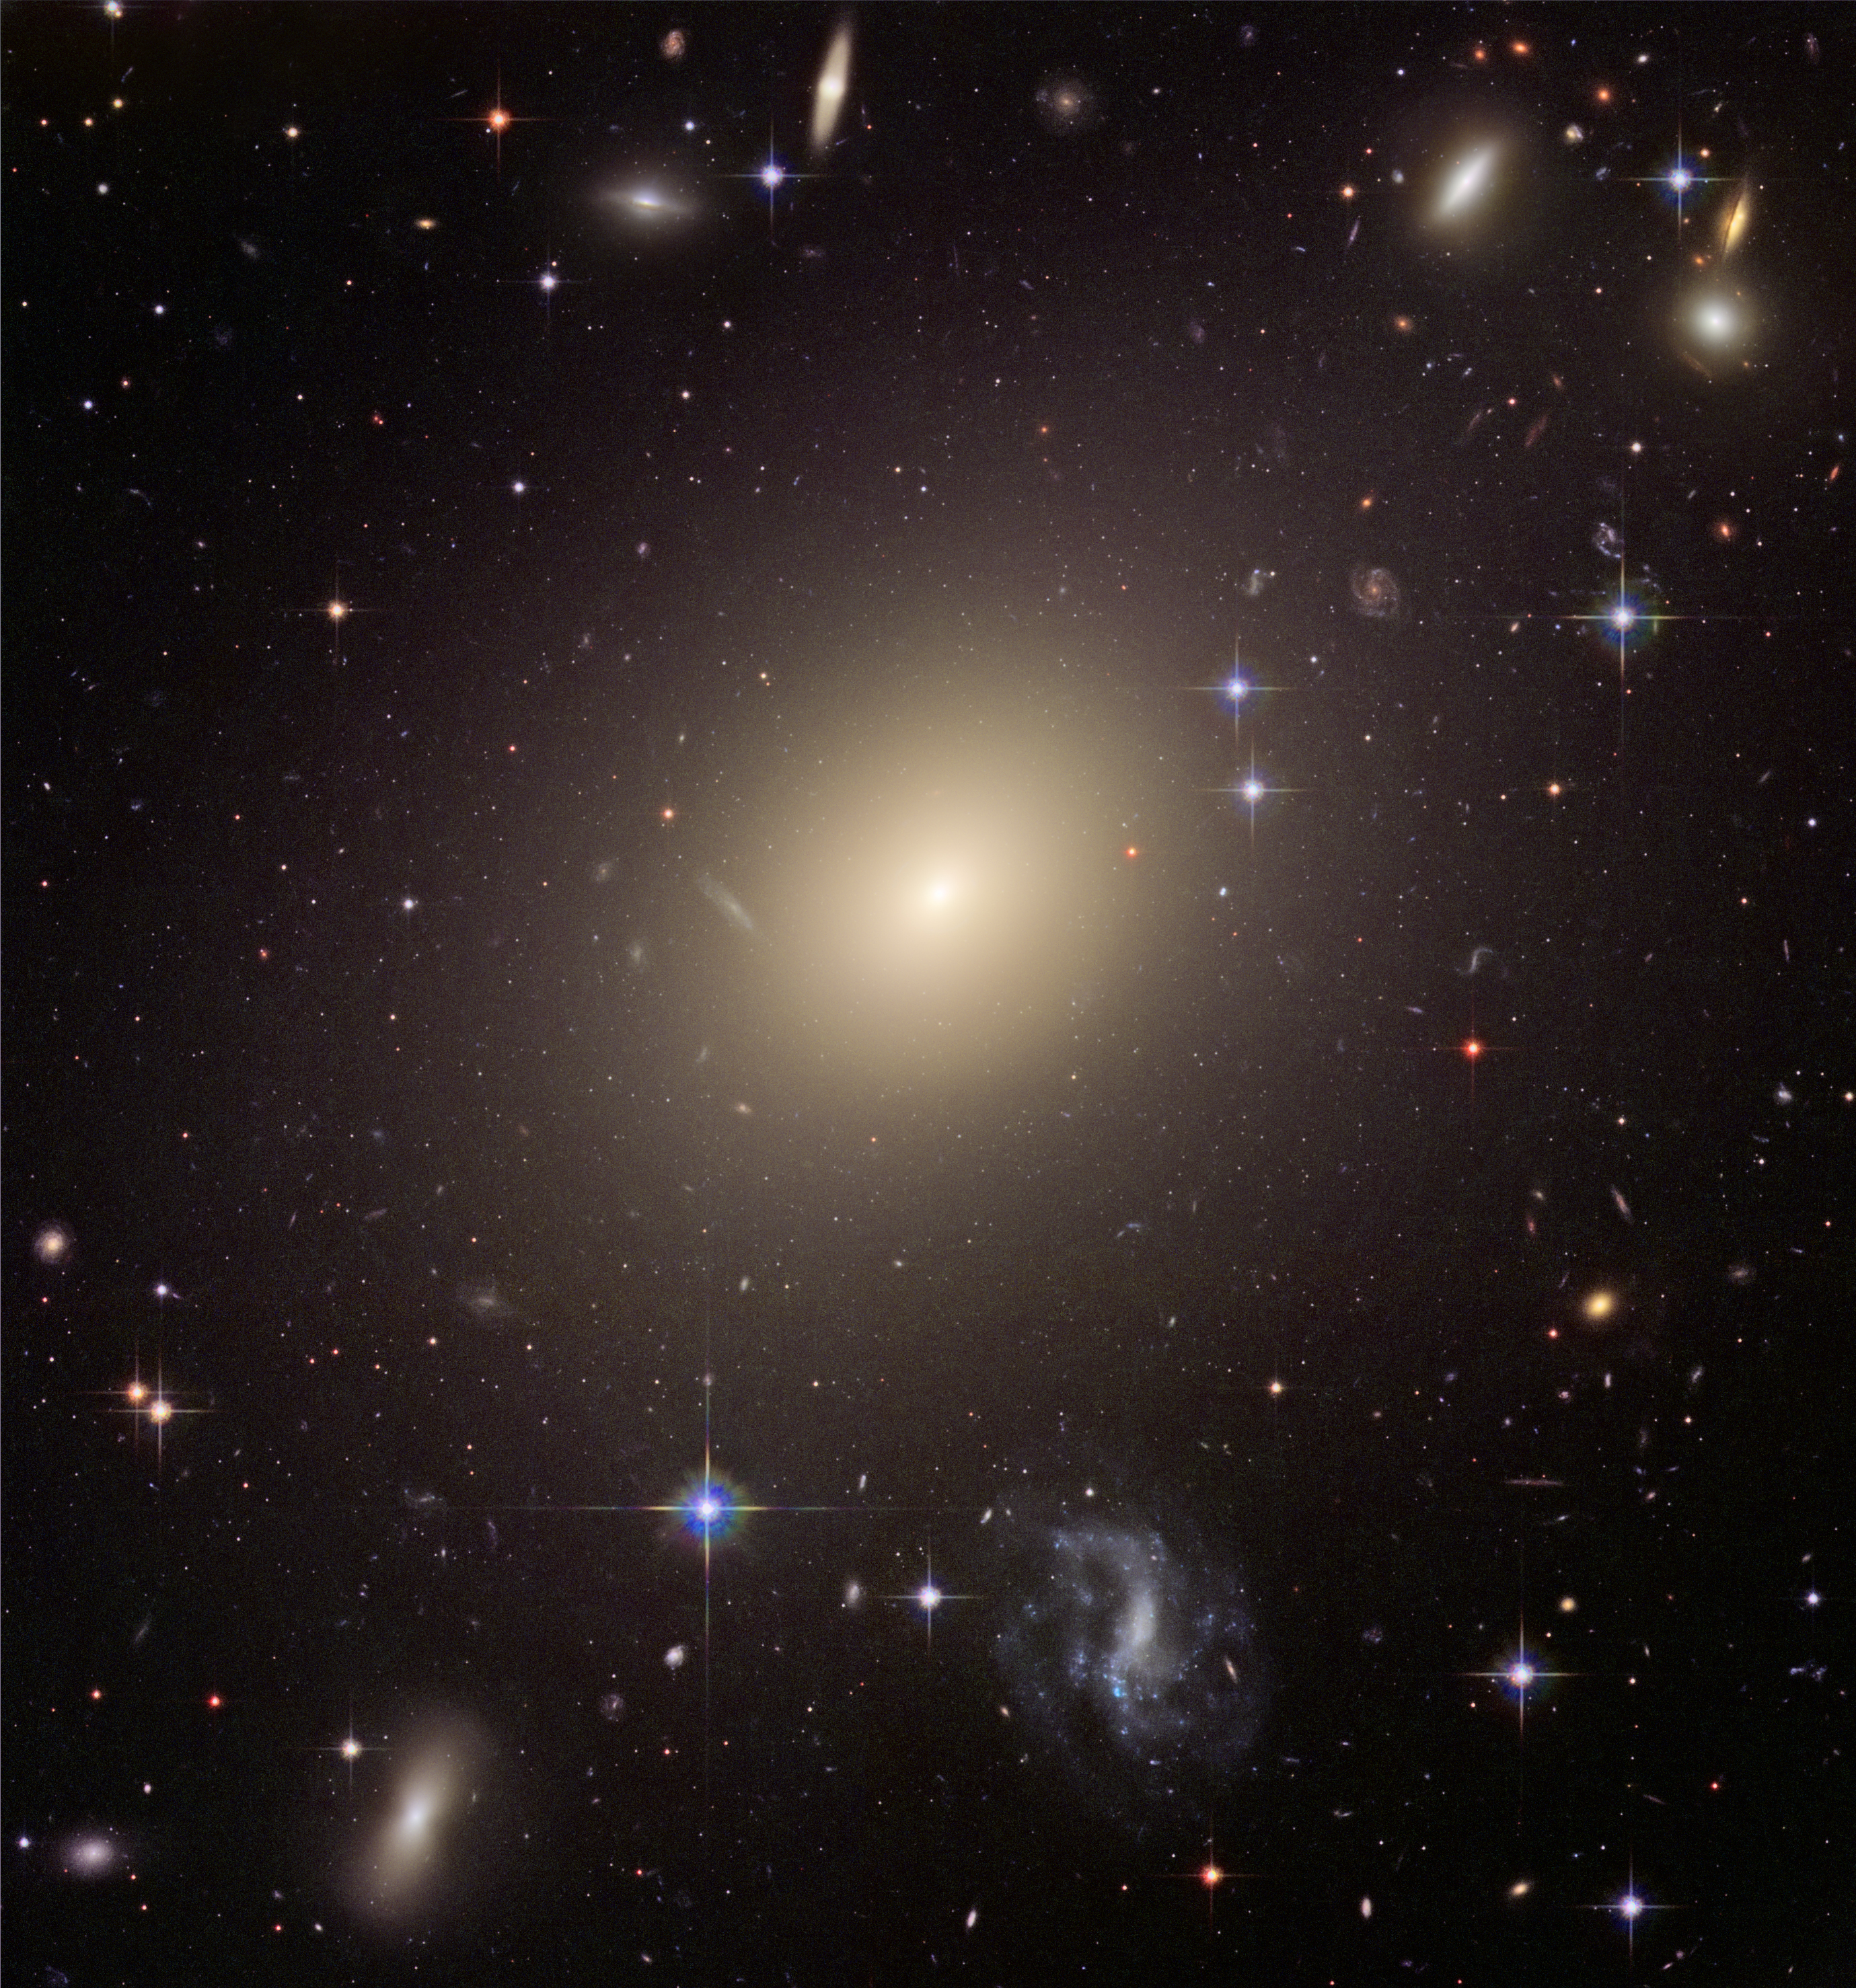 Are elliptical galaxies broken for me or have they just ...